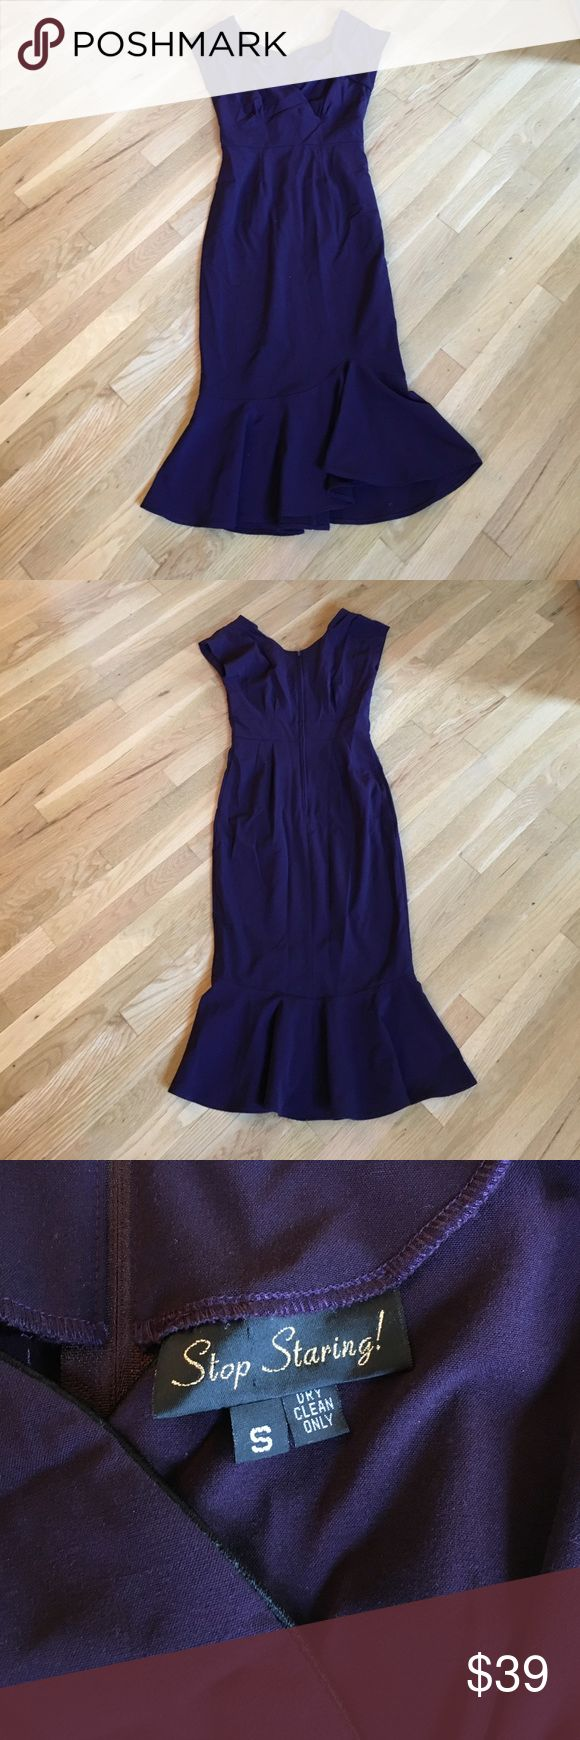 Stop staring plum colored dress size small Stop staring plum colored dress size small  63% poly, 33% rayon, 4% spandex, made in USA. Dry clean only. Used. Stop Staring Dresses